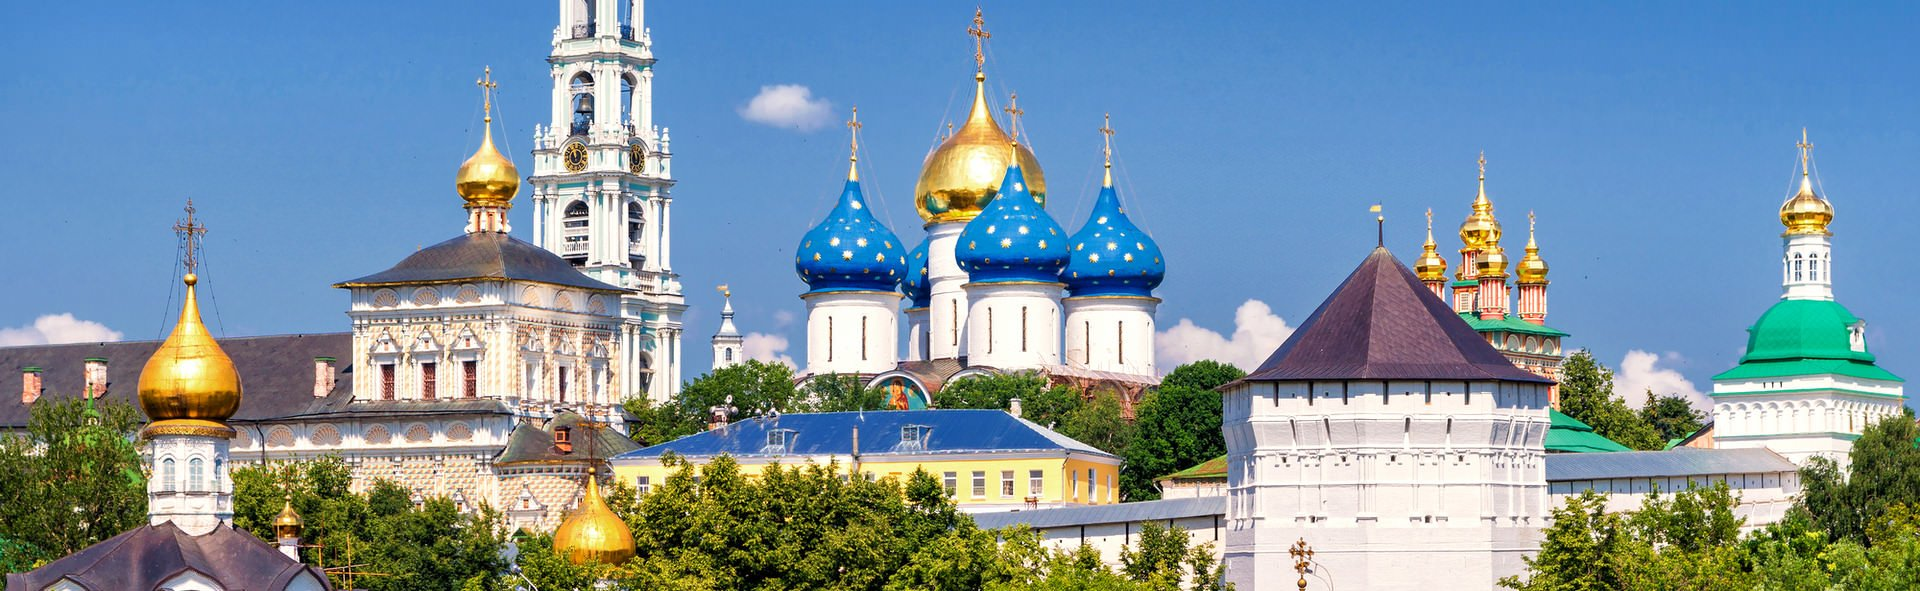 Visit Rostov the Great | Russia Tour Package 2019/2020